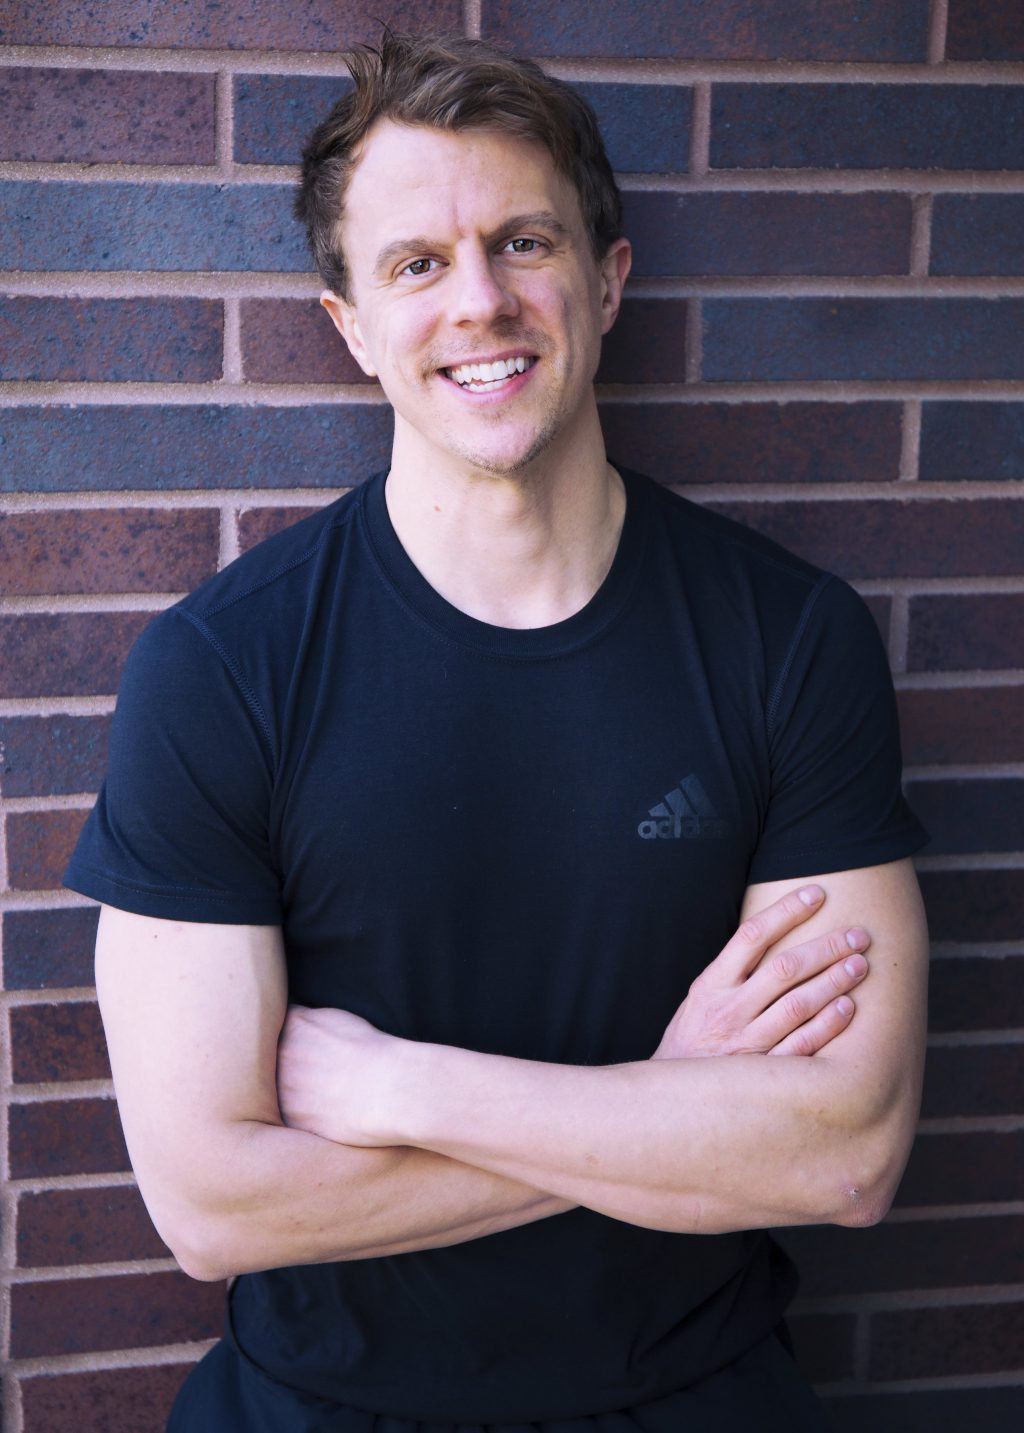 Personal Trainer Chicago, Illinois - Brendan Butkus